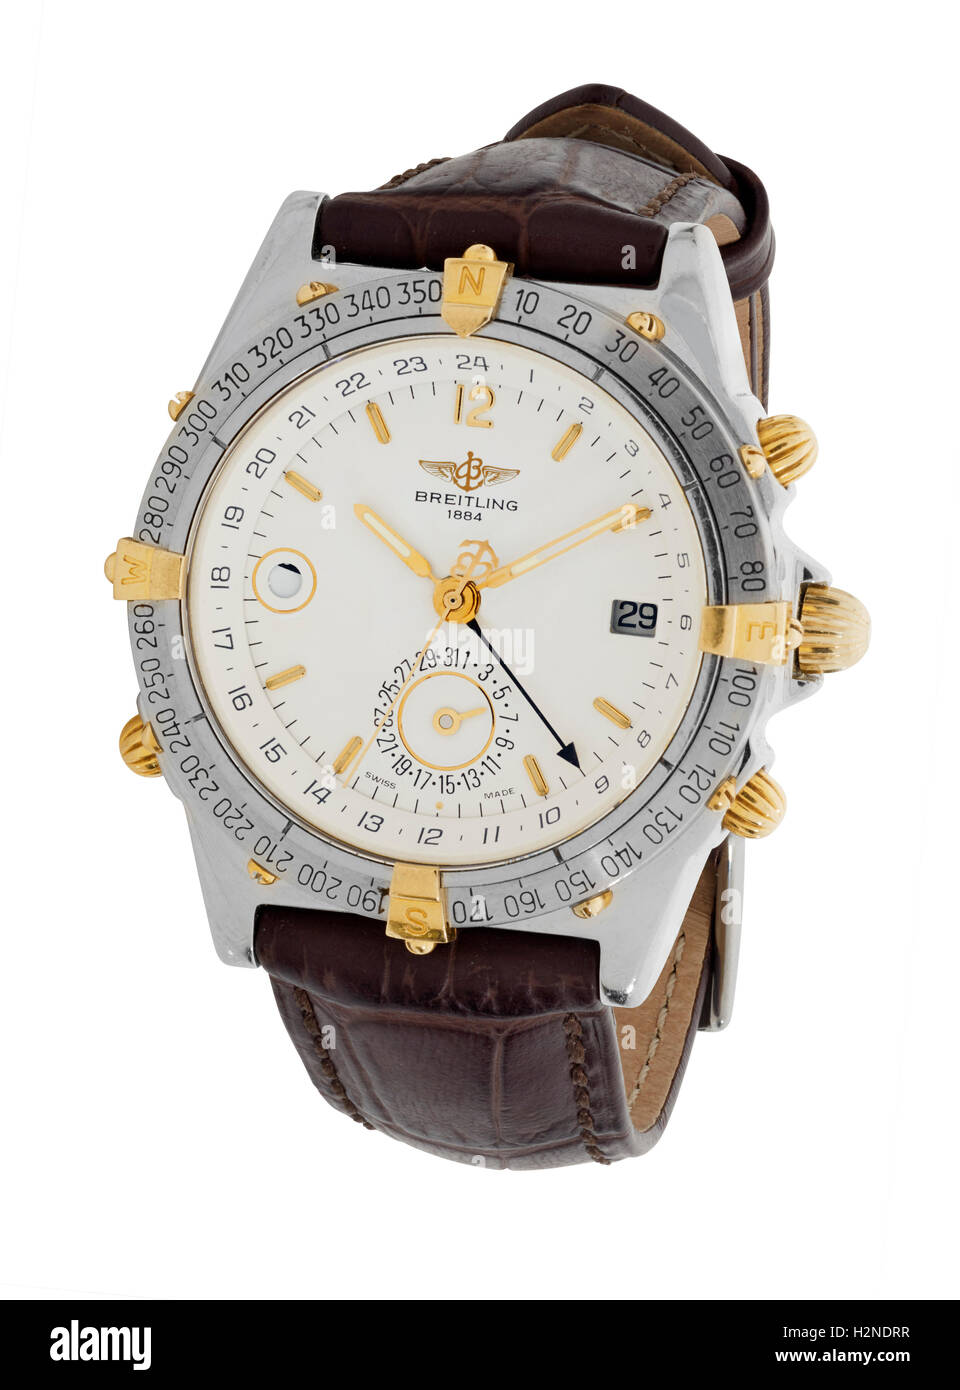 Breitling mans watch - Stock Image